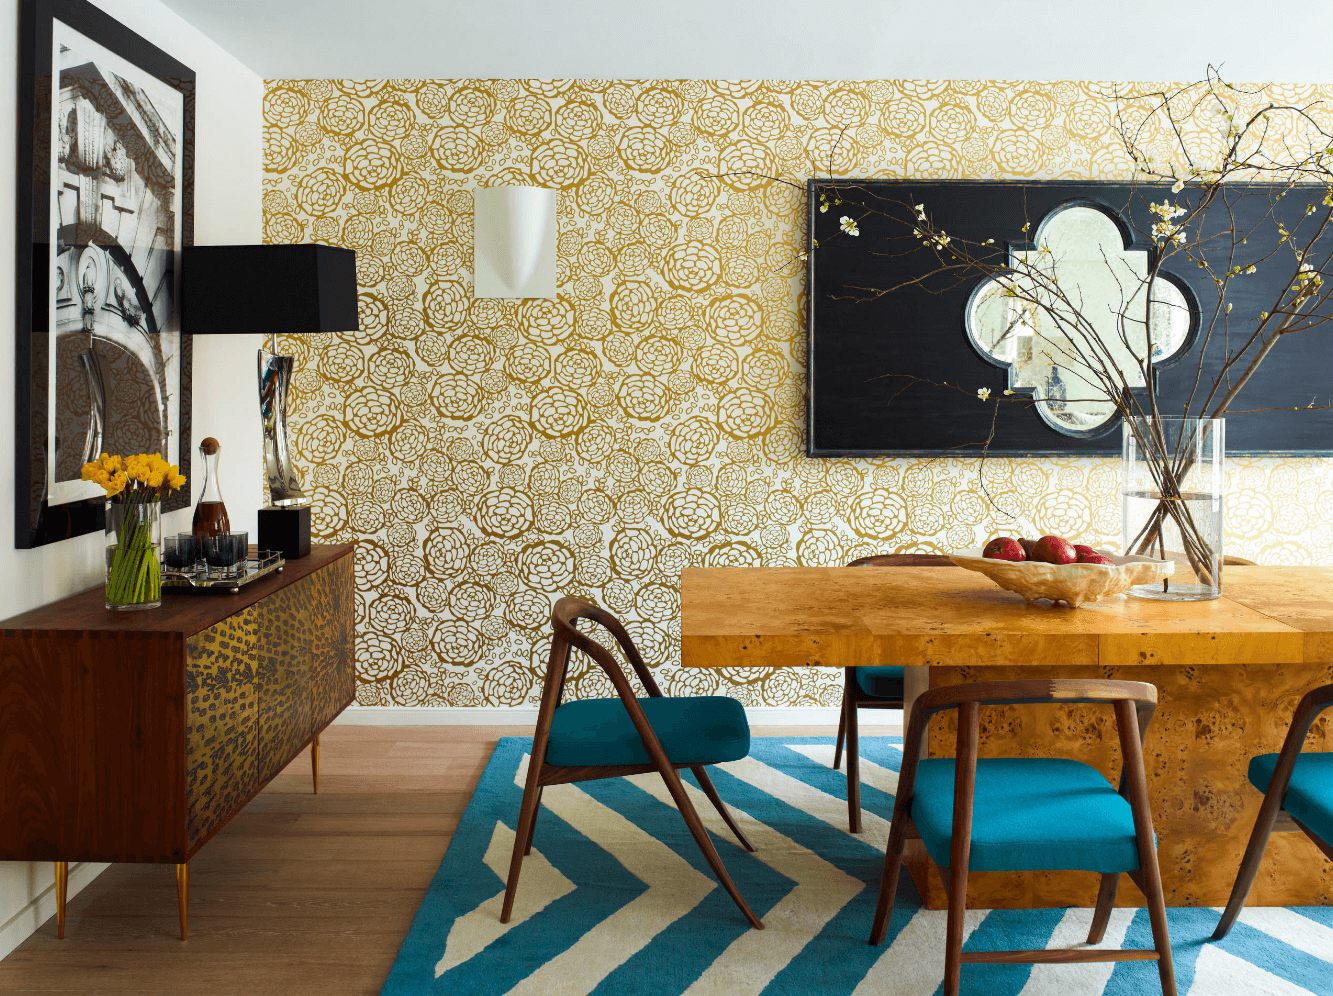 28 Stunning Wallpaper Ideas Your Home Needs | Freshome.com